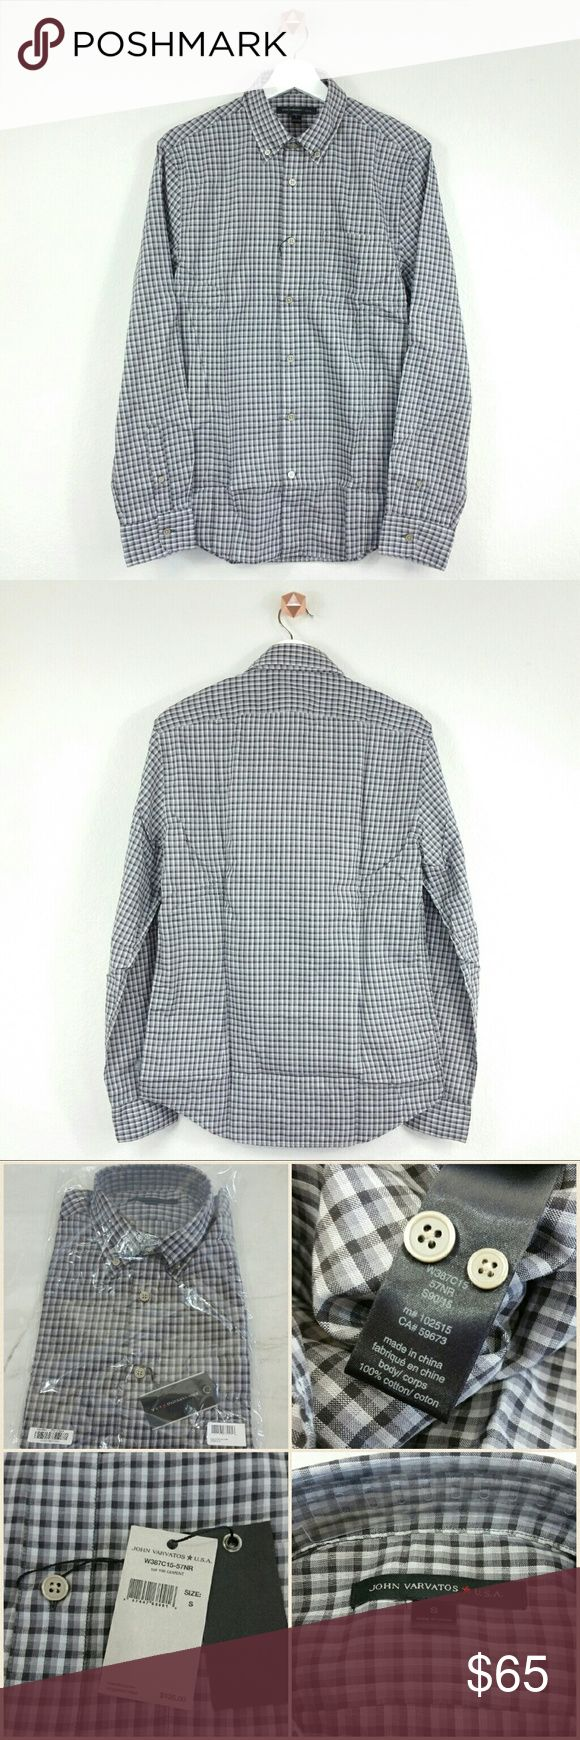 JOHN VARVATOS STAR USA checkered sportshirt Button down collar and closure. Chest patch pocket. Rolled tab sleeve. Barrel cuffs with double button closure. Curved hem. Tonal top stitching and panel seaming. Checkered print throughout. Fabric: 100% cotton. Color: grey-white checkered Size: S.  NWT. Never worn. Can provide more pictures and info upon request. Reasonable offer only please :) John Varvatos Shirts Casual Button Down Shirts